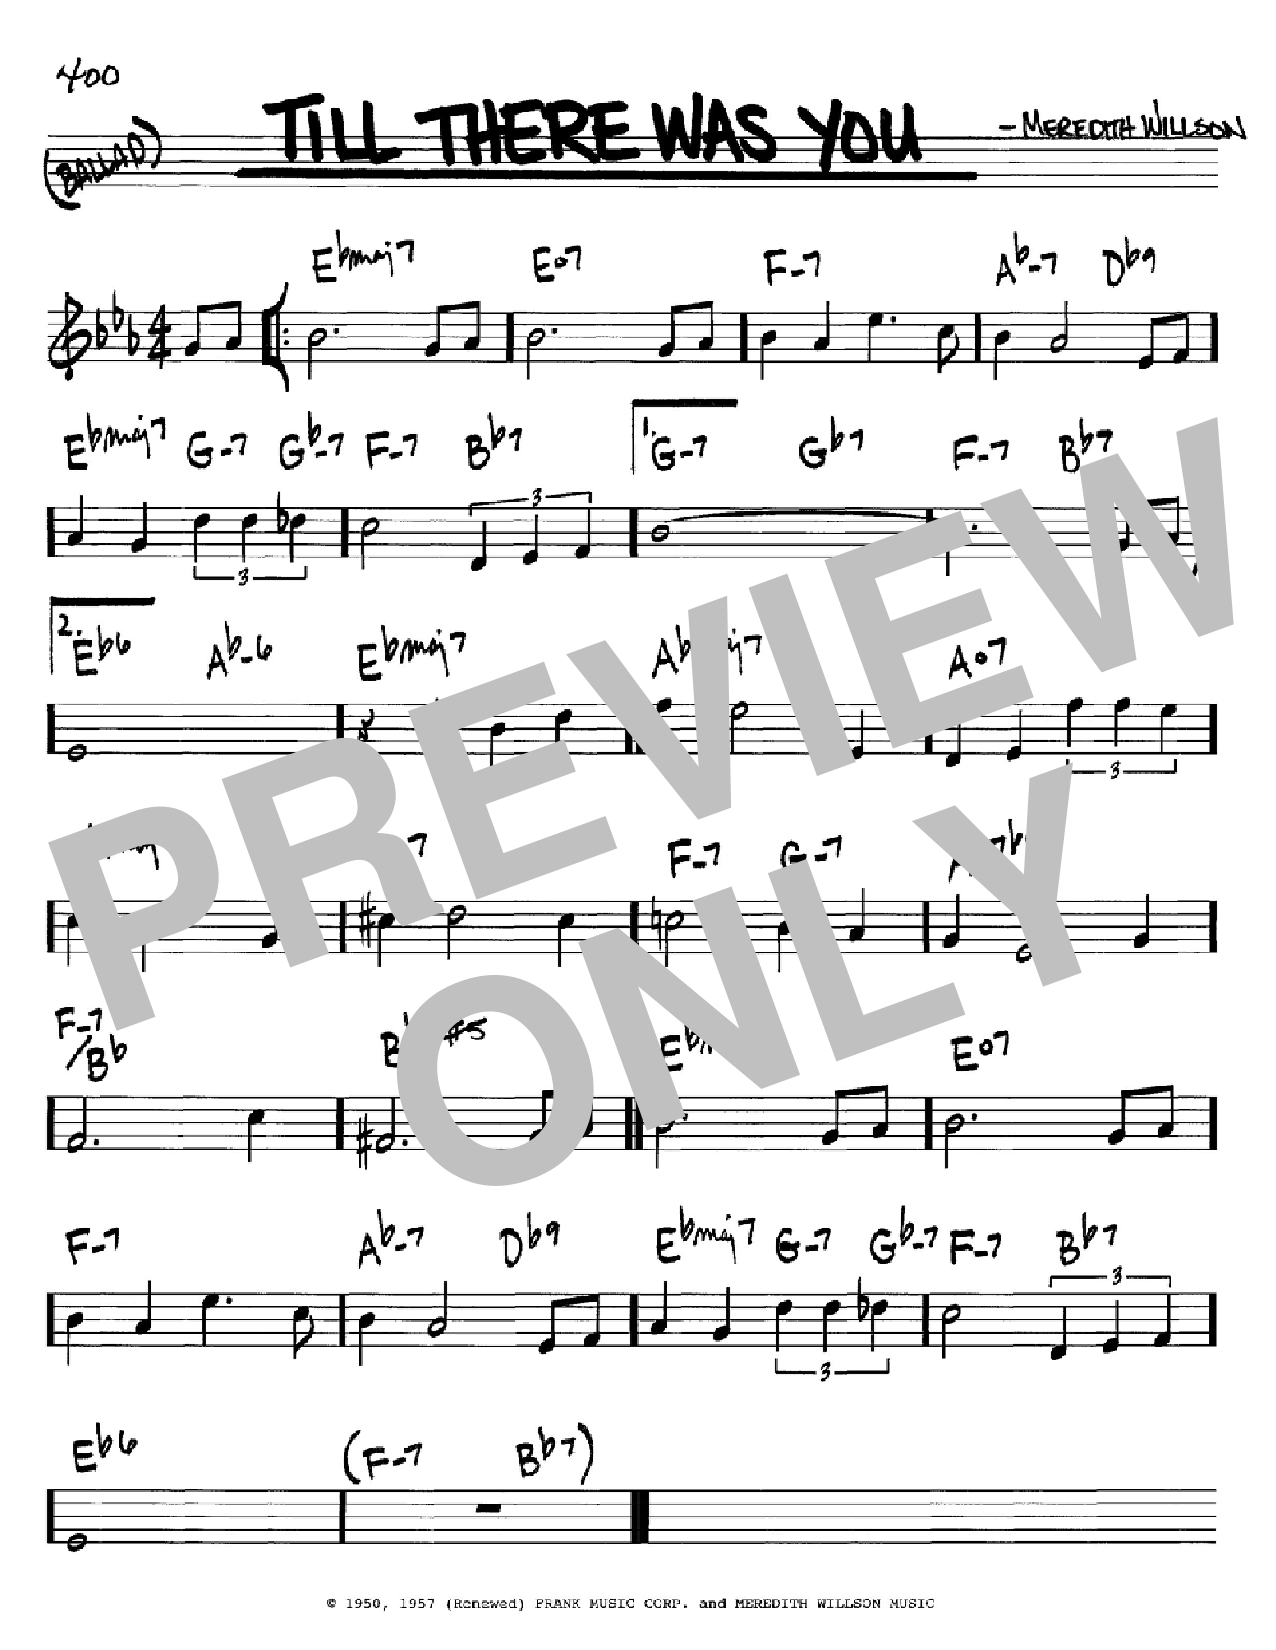 Till there was you sheet music by the beatles real book melody the beatles till there was you real book melody chords c instruments hexwebz Images